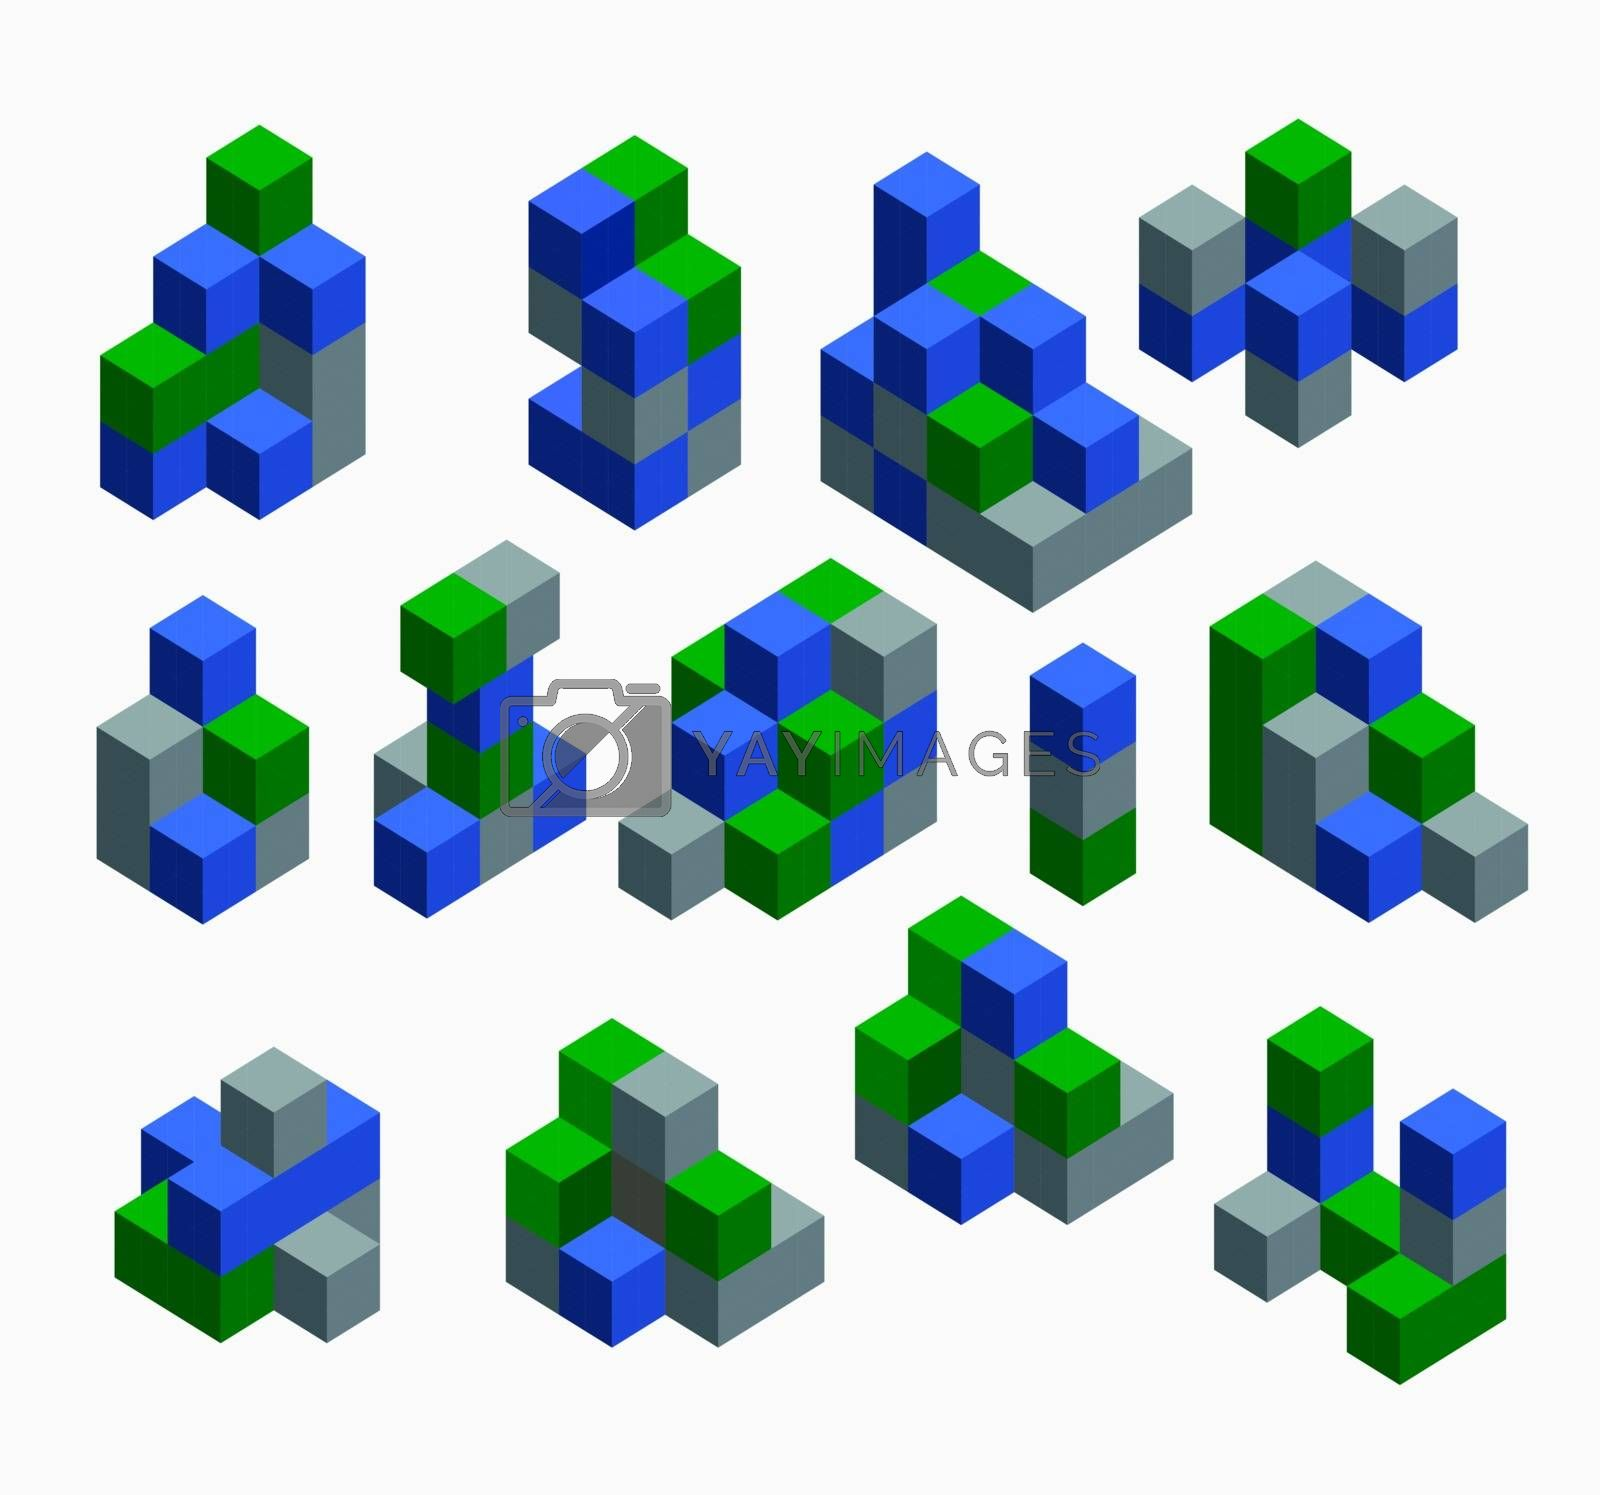 Isometric abstract geometric design elements with colored parts on a white background